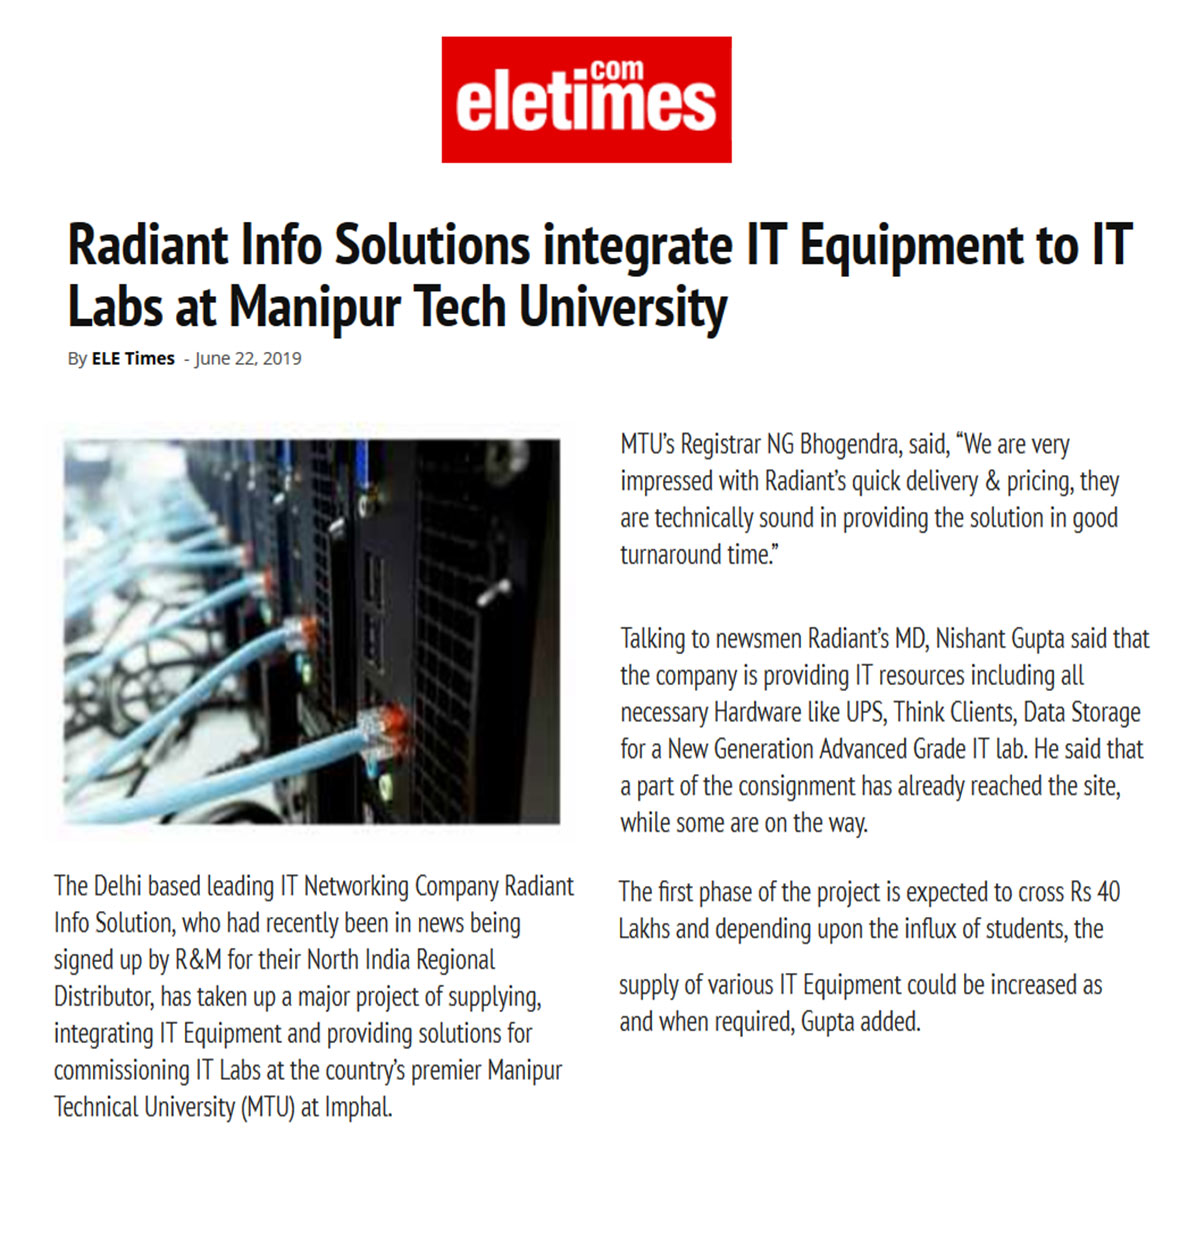 Radiant Info Solutions integrate IT Equipment to IT Labs at